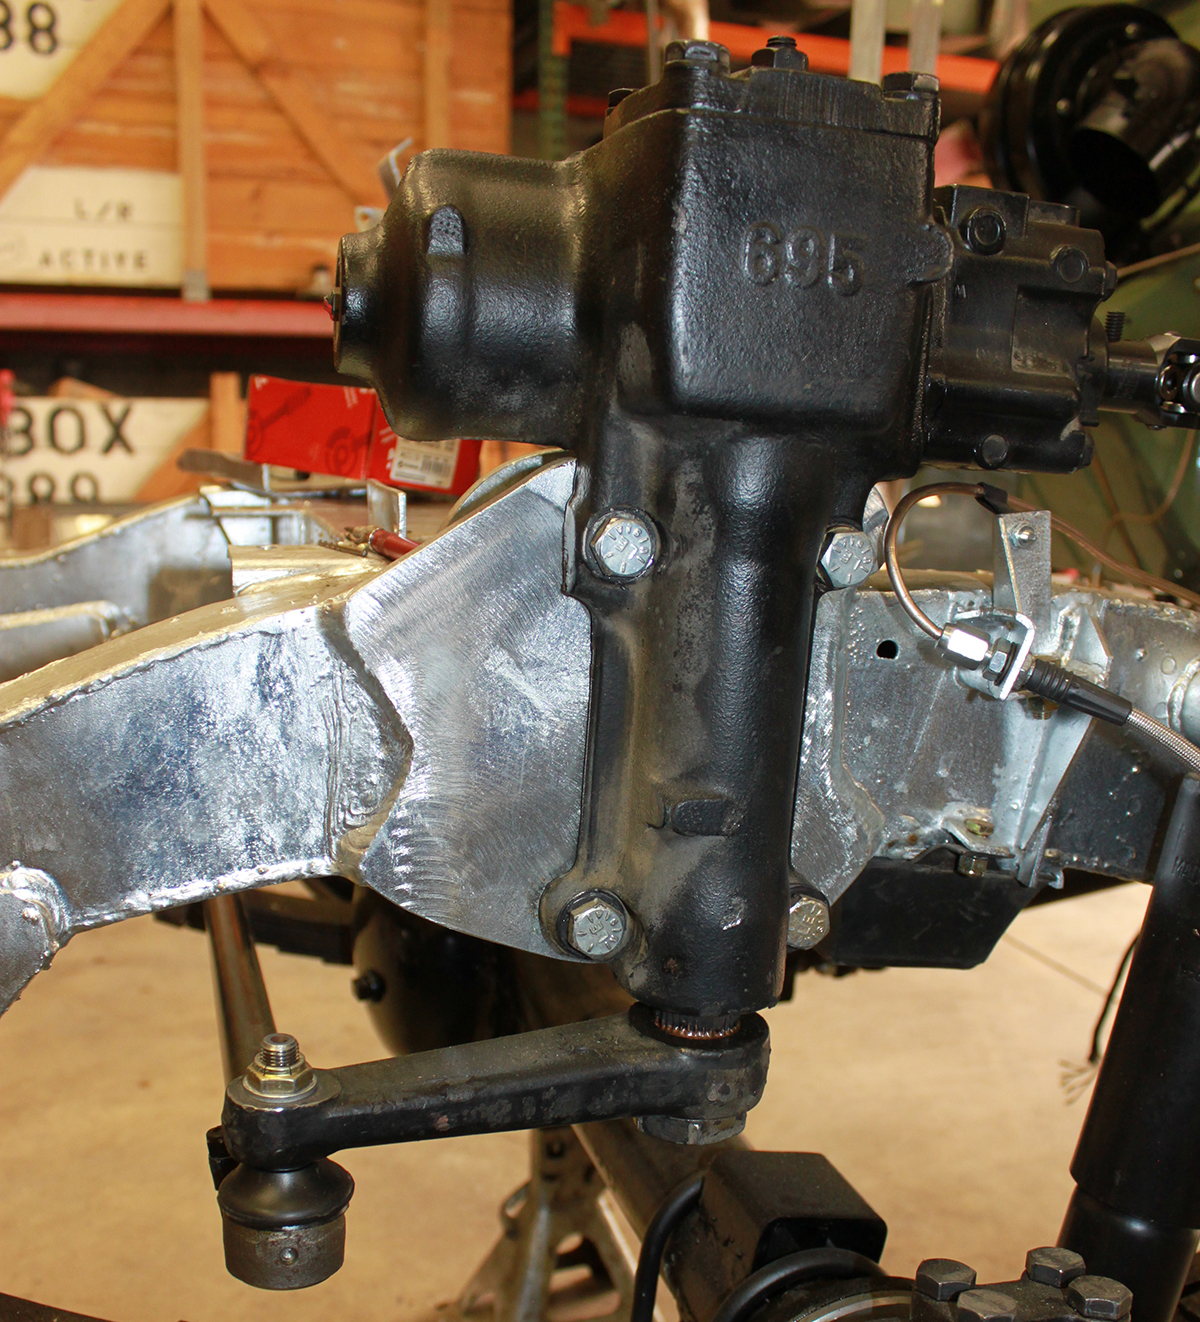 Converting a series Land Rover to power steering